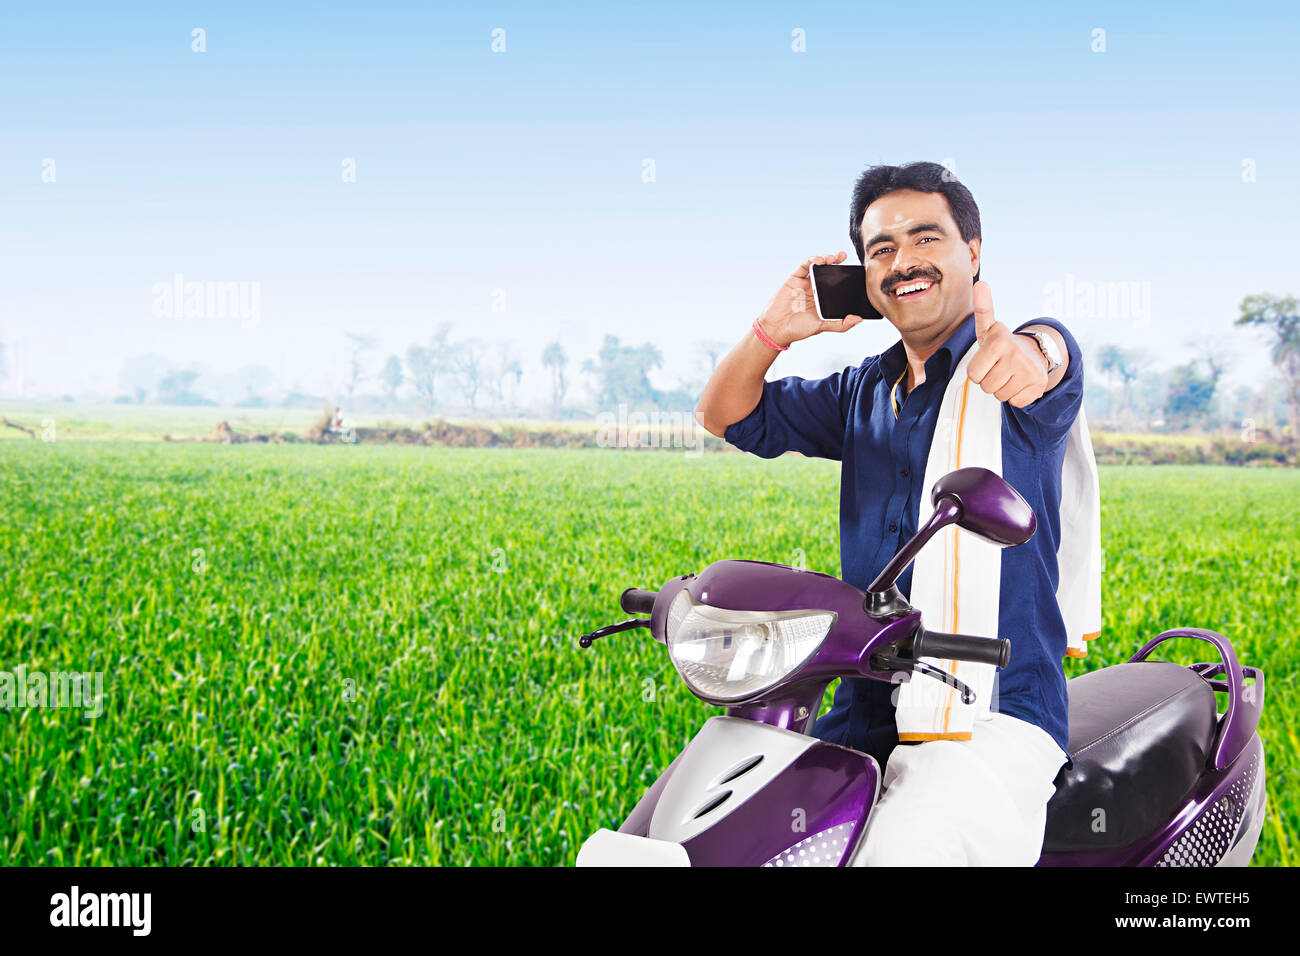 284f8cf486 1 South Indian man farm Riding Scooty and talking Cell Phone Stock ...